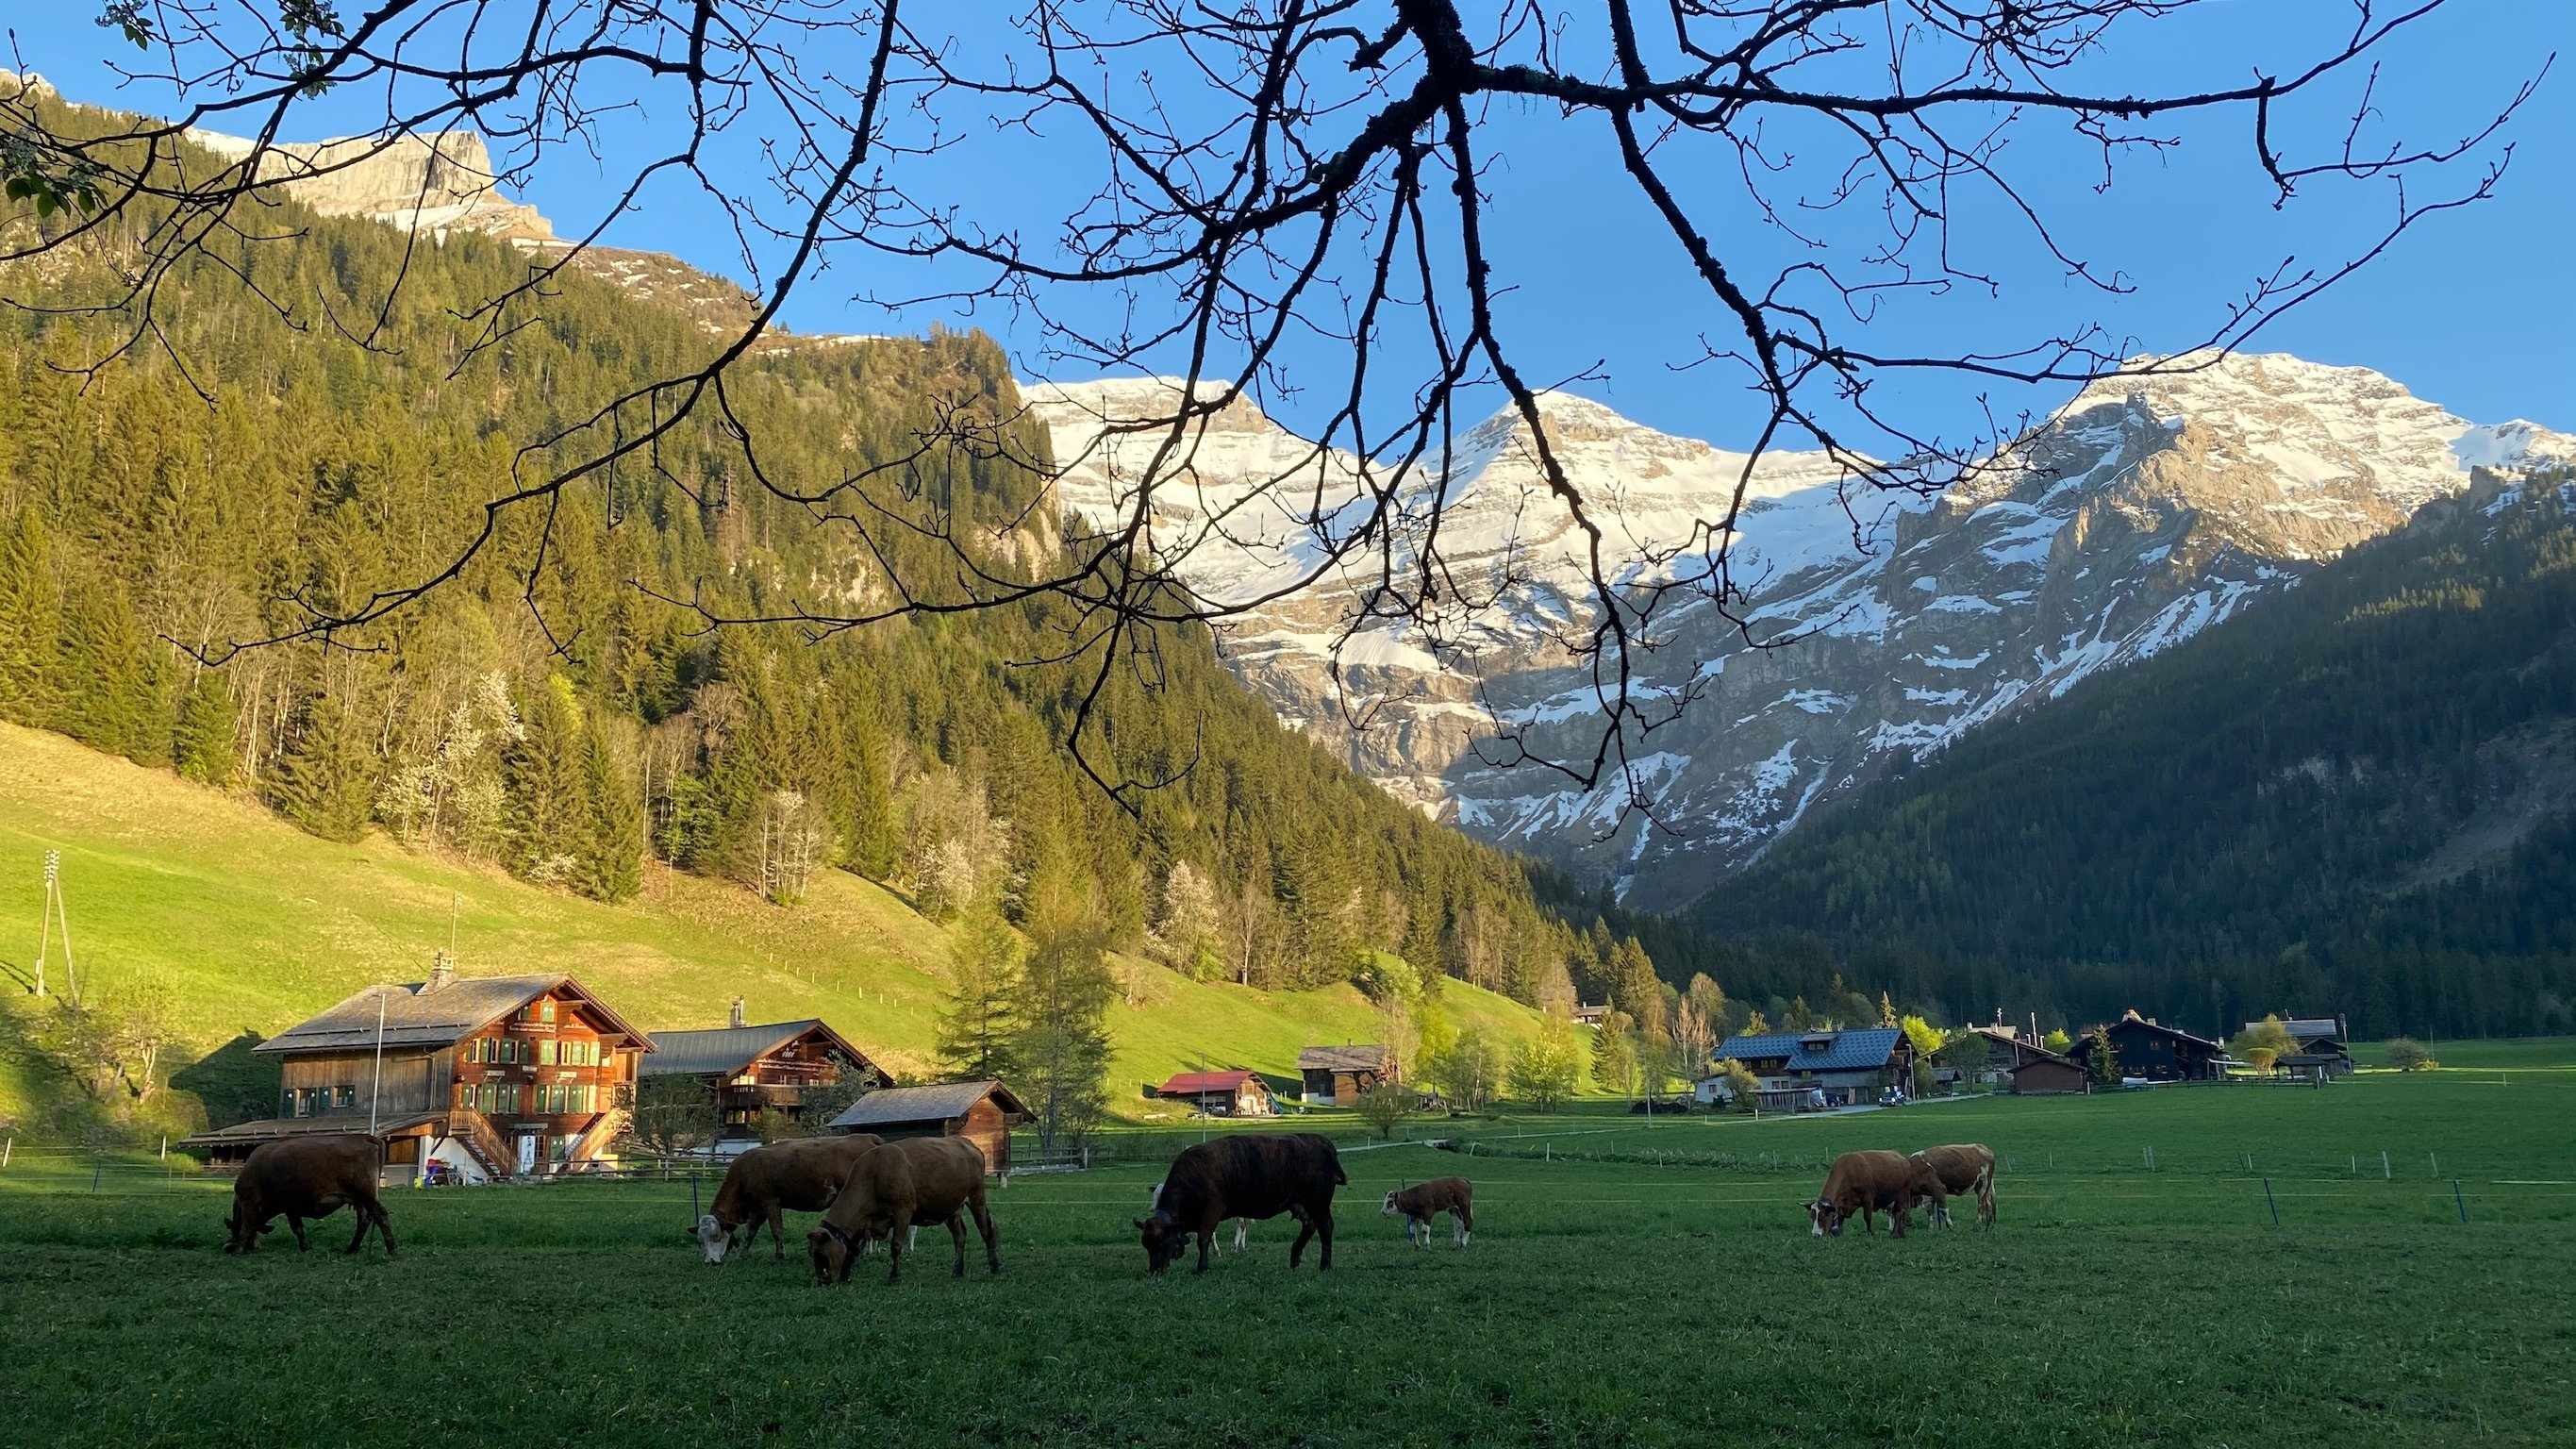 les diablerets suisse switzerland vaches cow